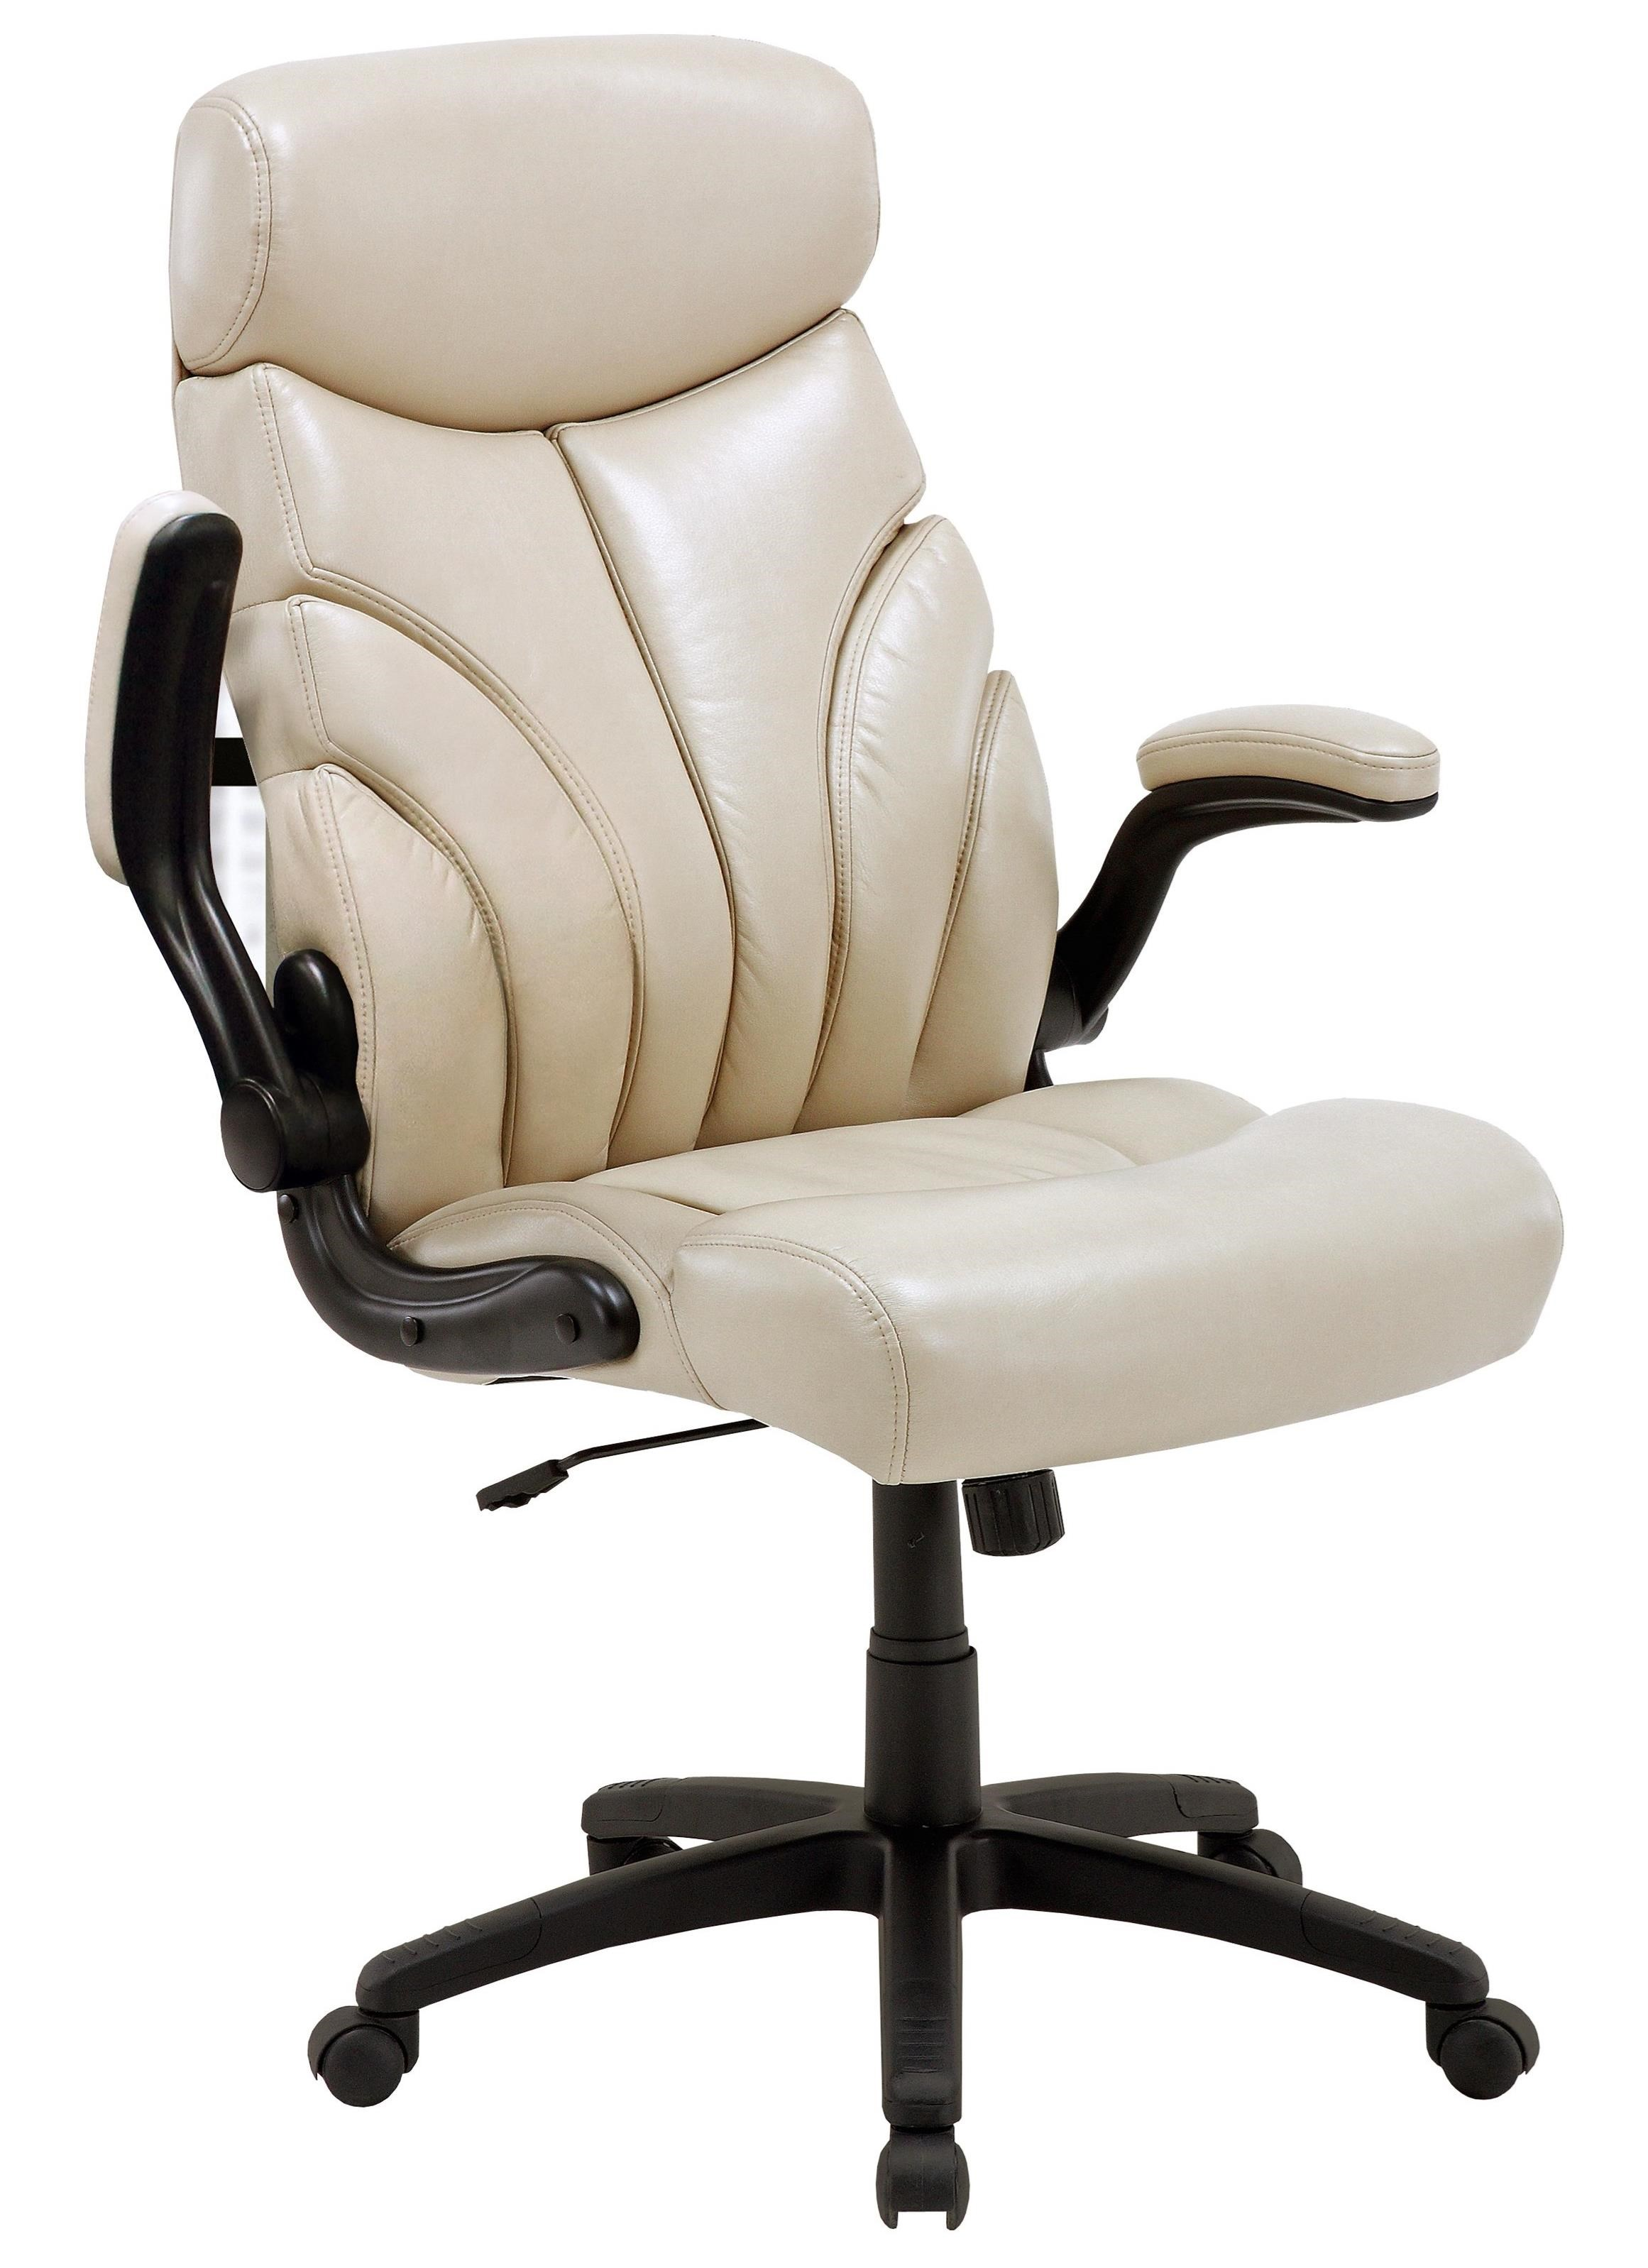 Desk Chairs Contemporary Desk Chair with Lift Arms